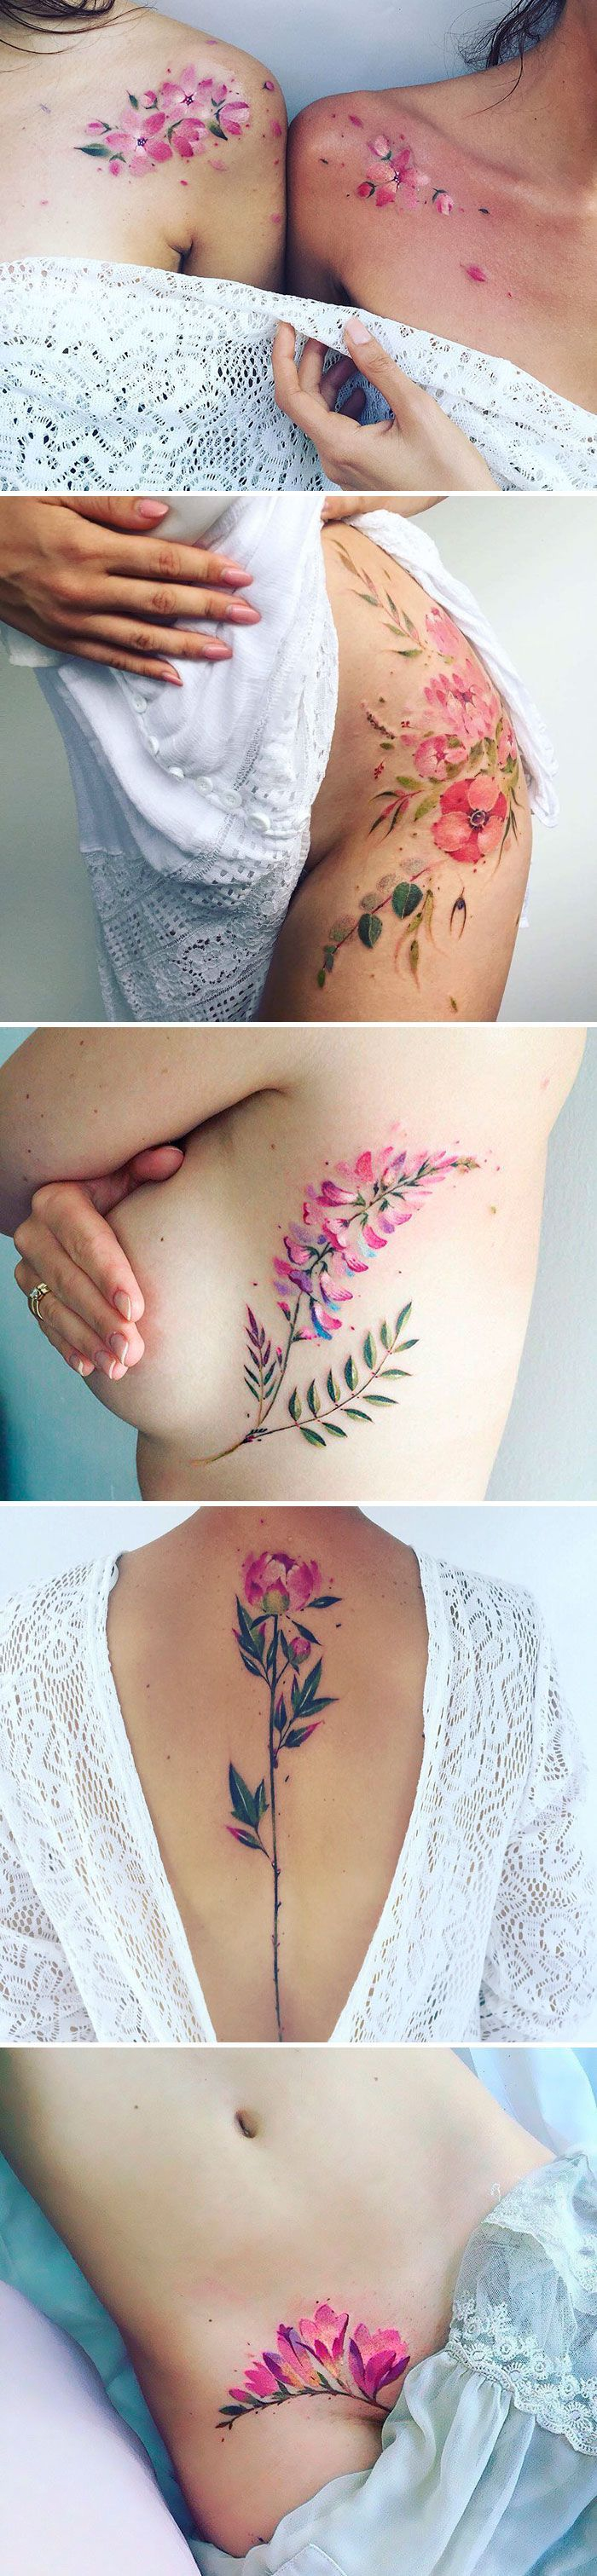 I will never get a tattoo, but if I did, ok maybe I will, it would be the lupine or freesia.